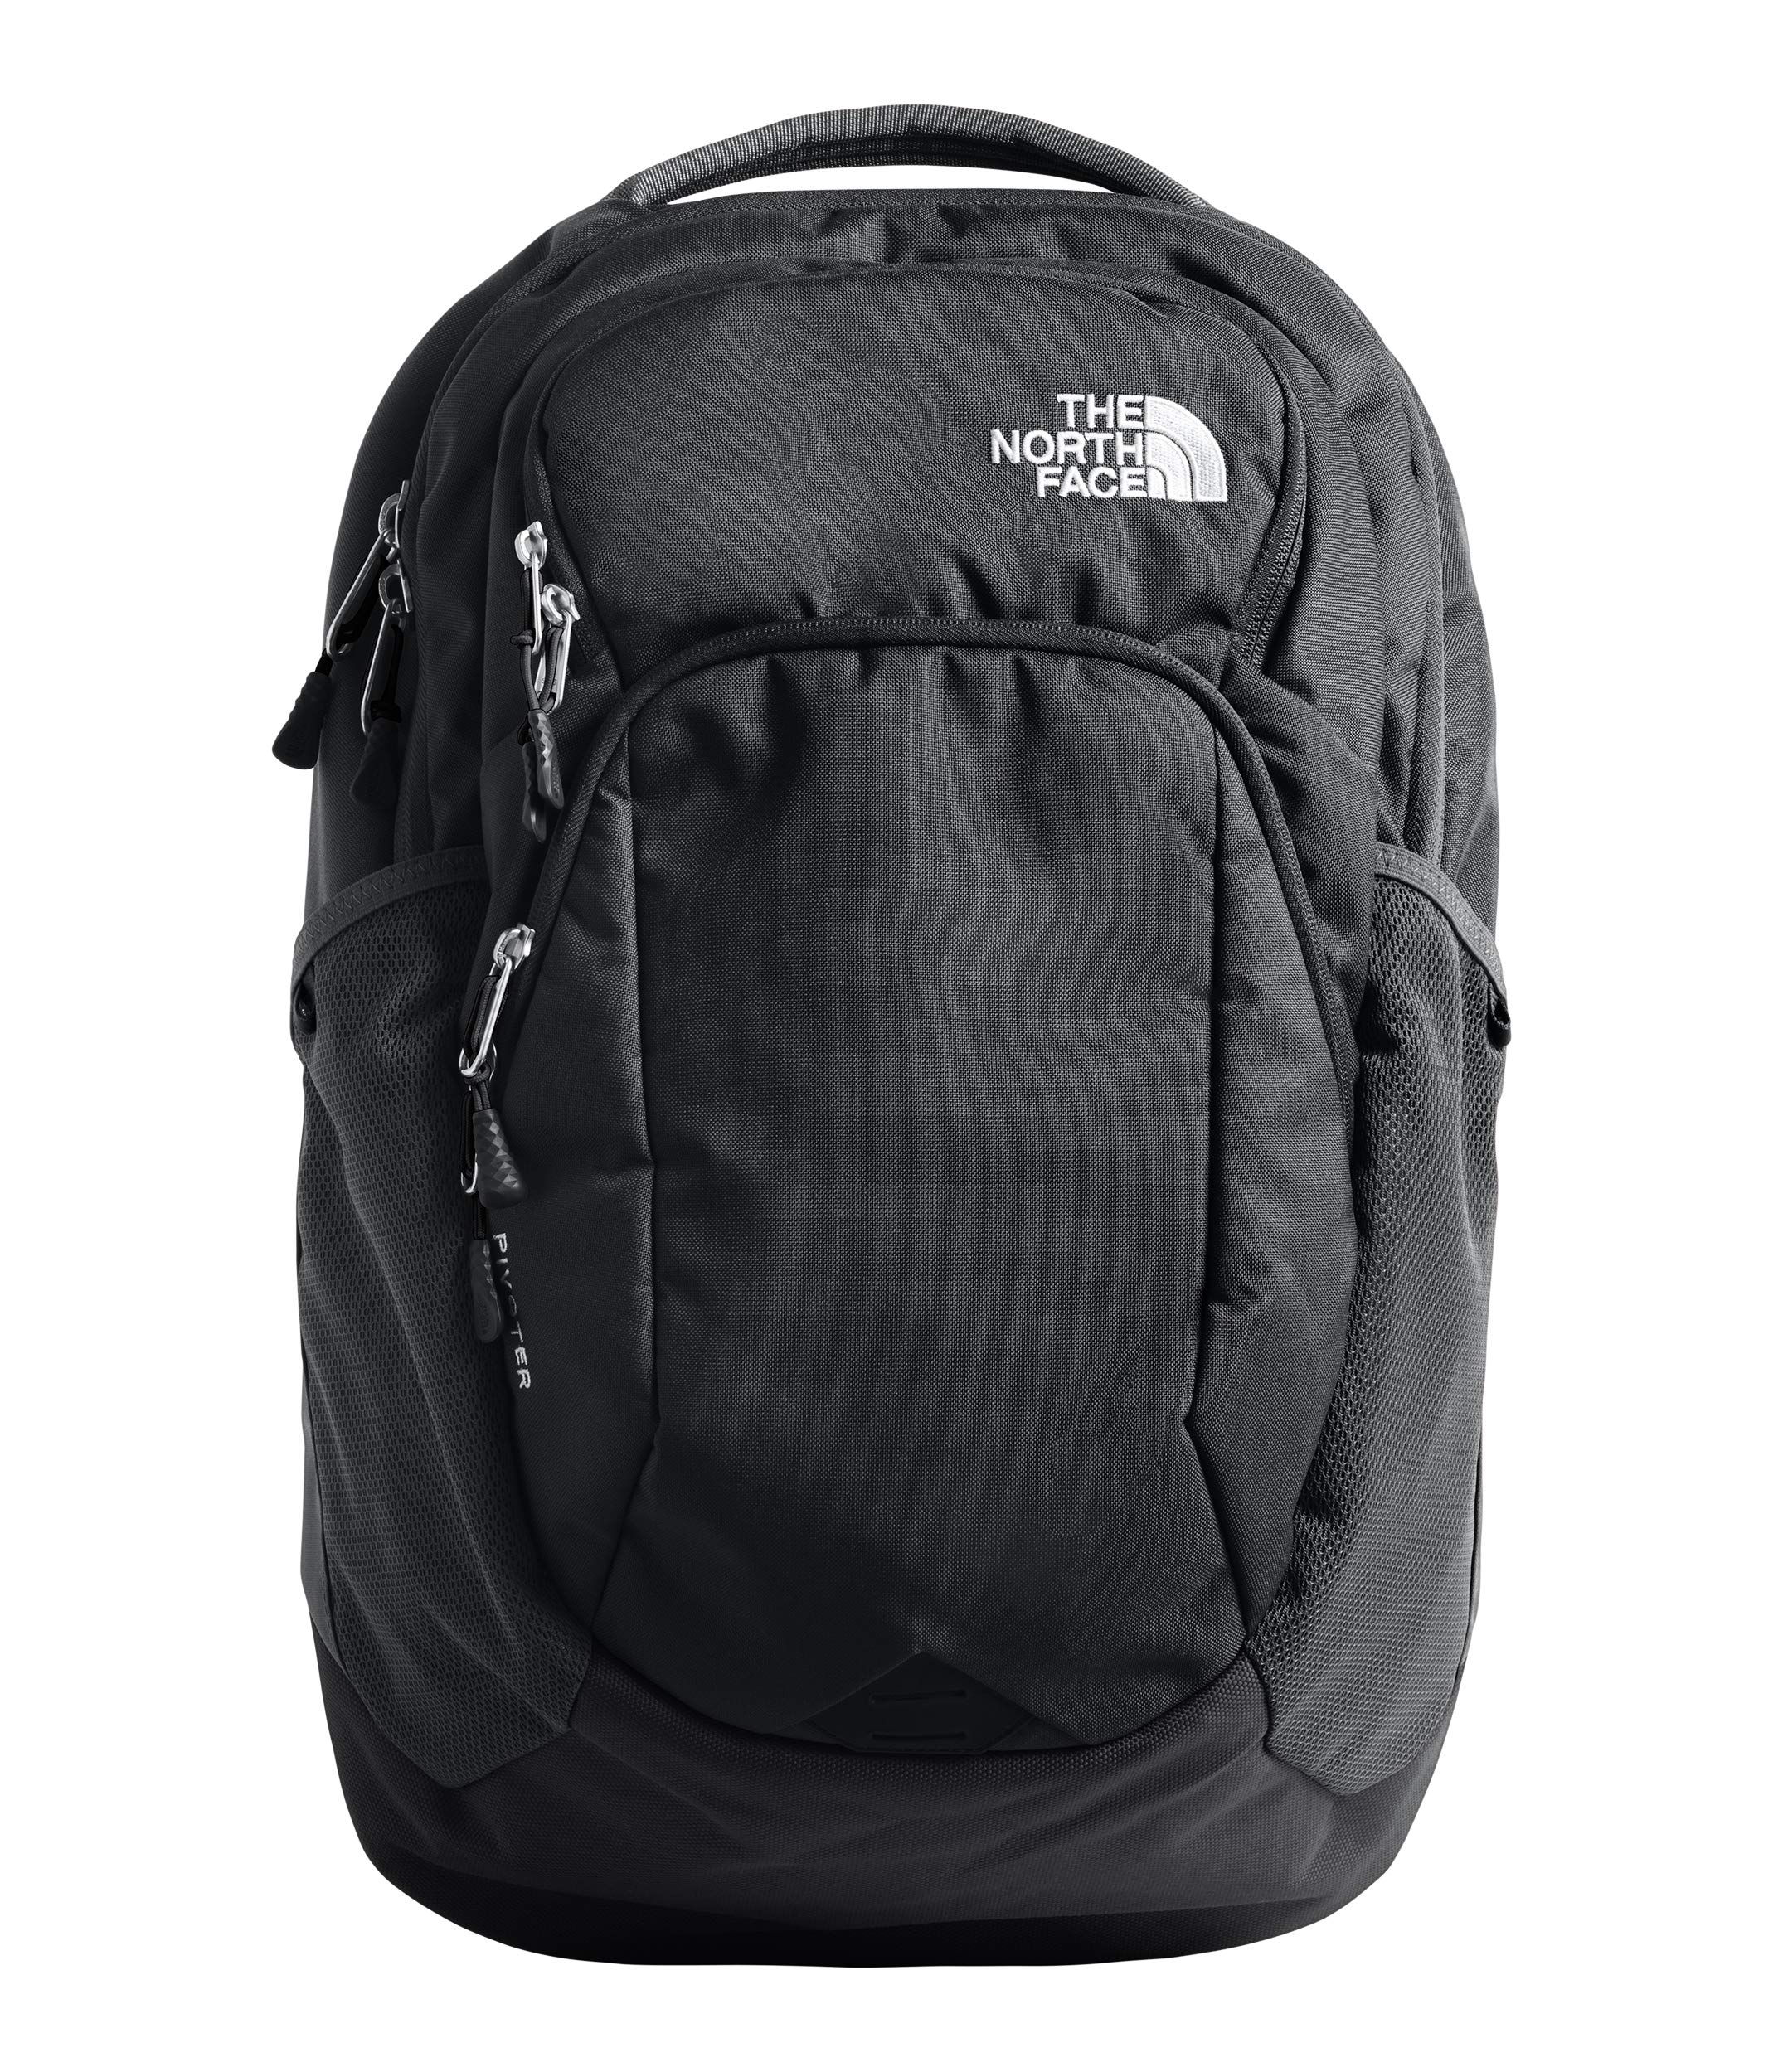 The North Face Pivoter, TNF Black, OS by The North Face